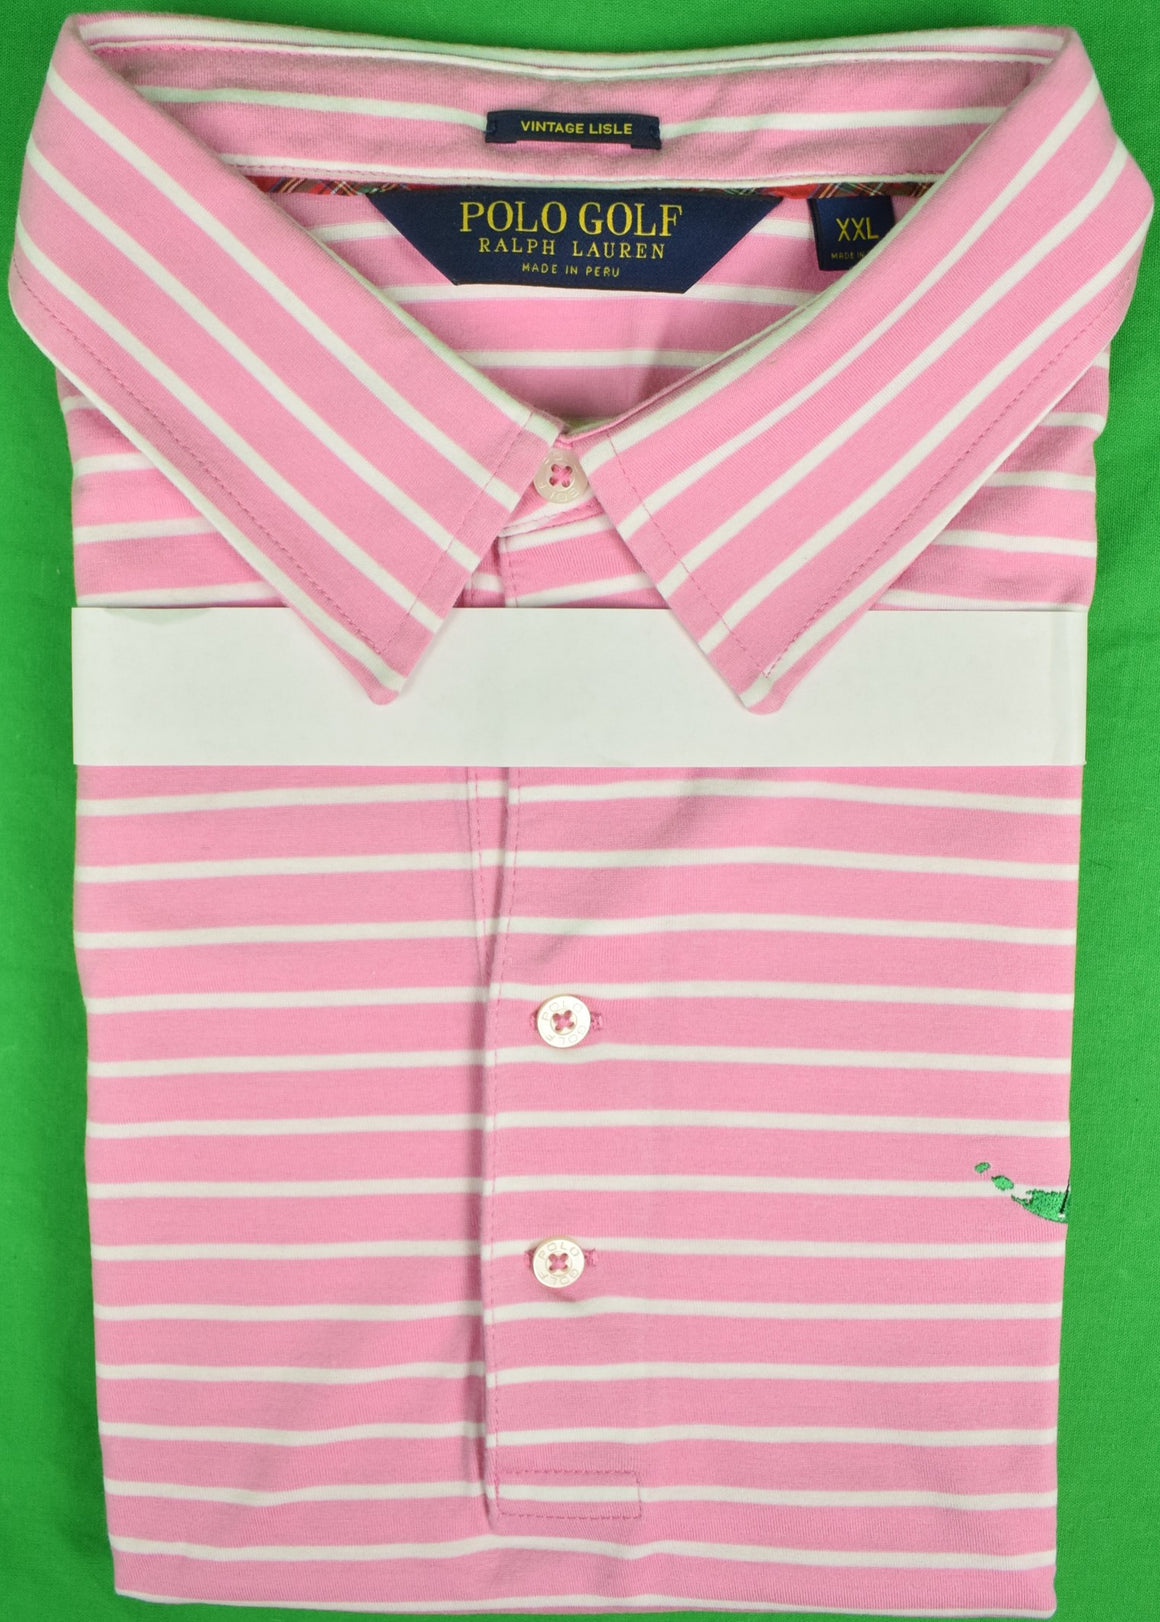 Ralph Lauren Golf Polo Pink/ White Stripe Shirt w/ Miacomet Club of Nantucket Logo Sz: XXL